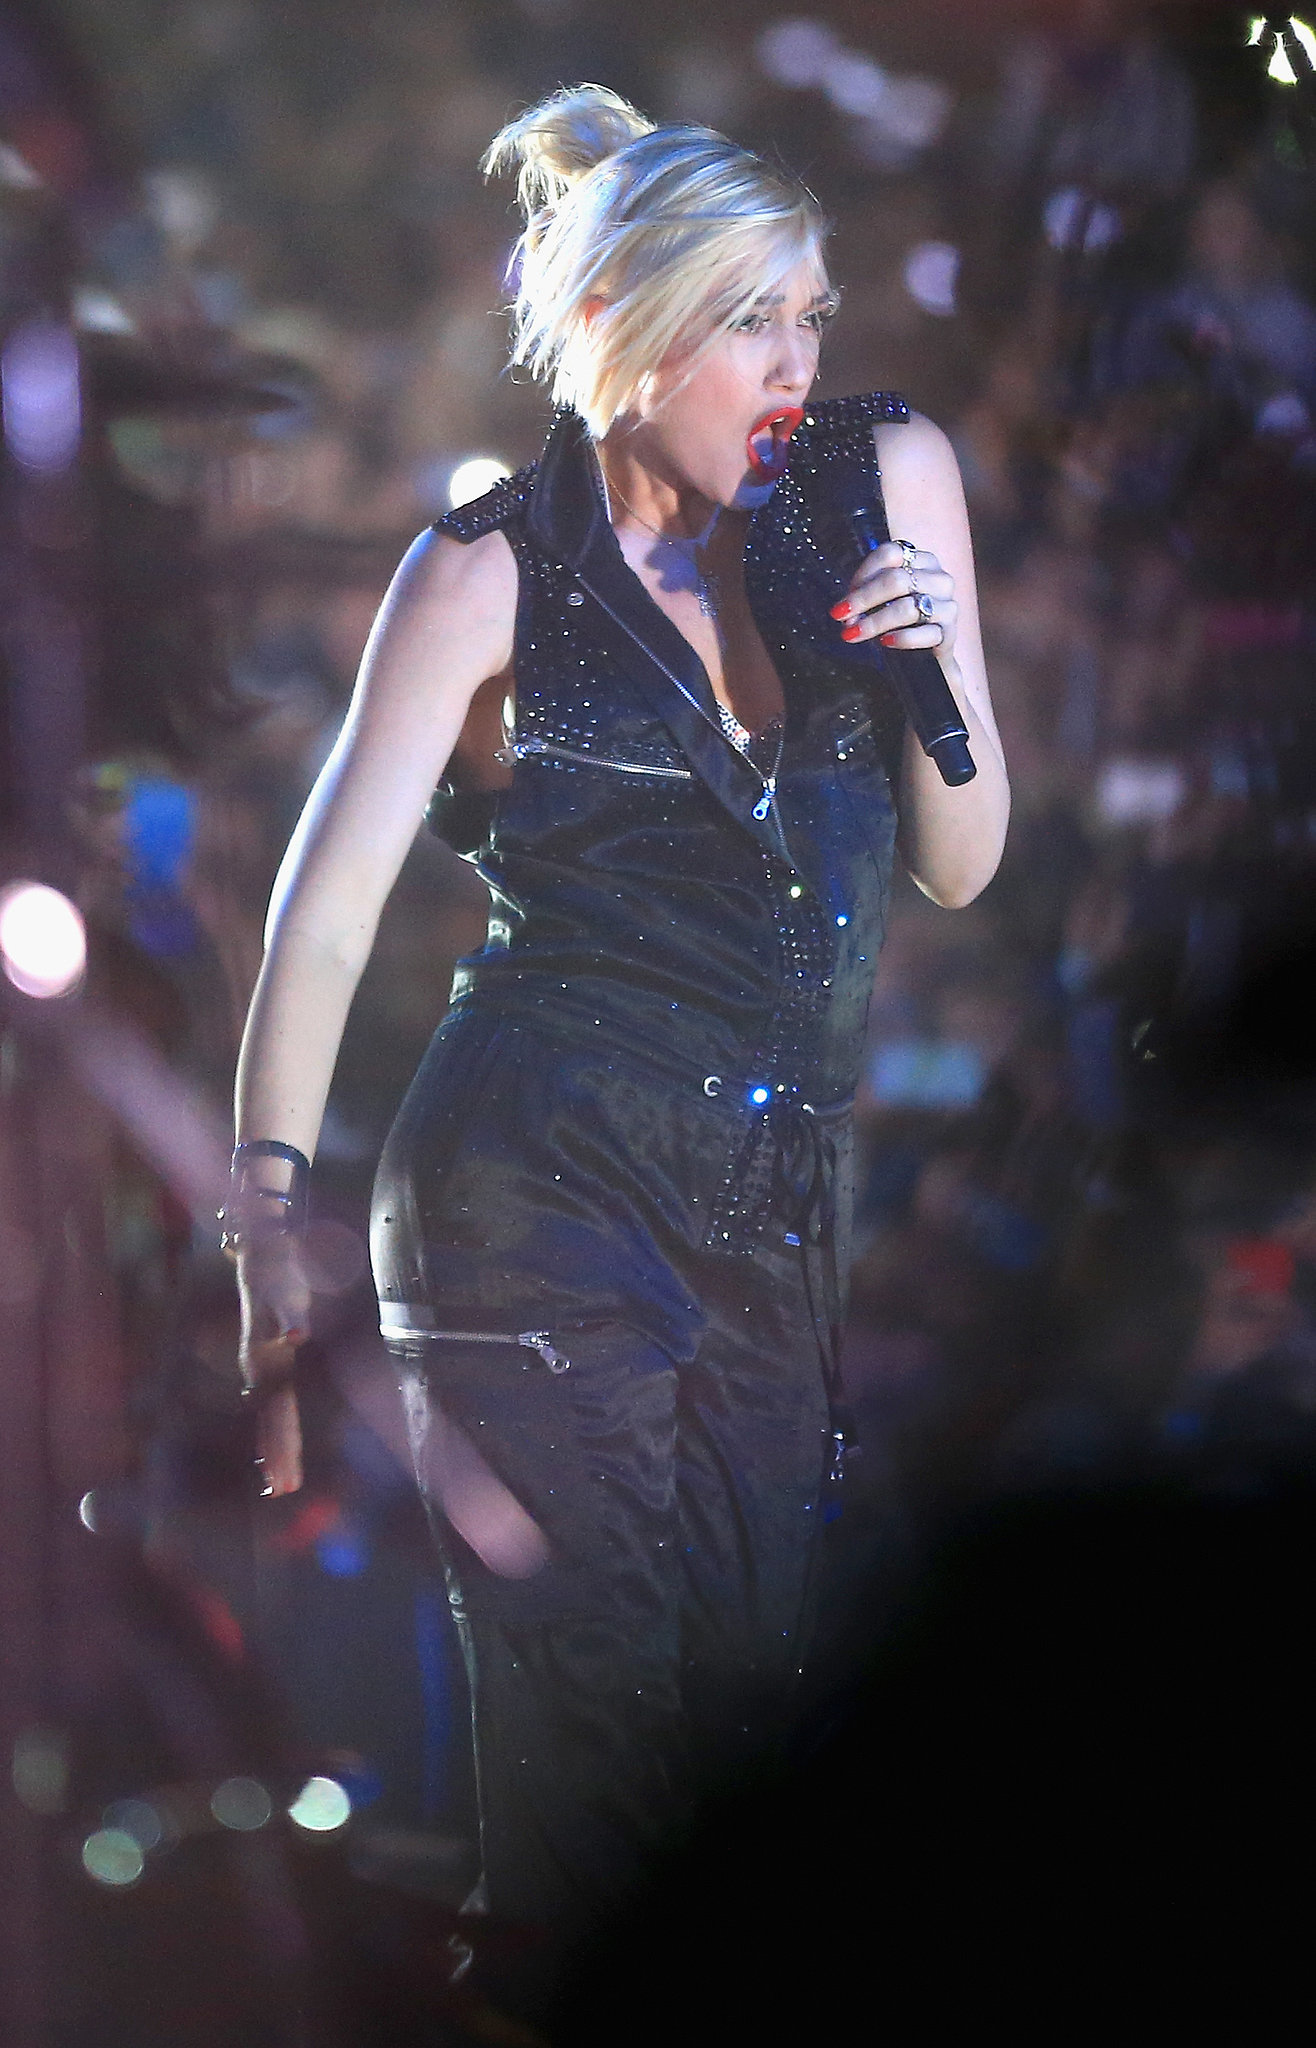 Gwen Stefani performed at Coachella just six weeks after she gave birth to her third son, Apollo.